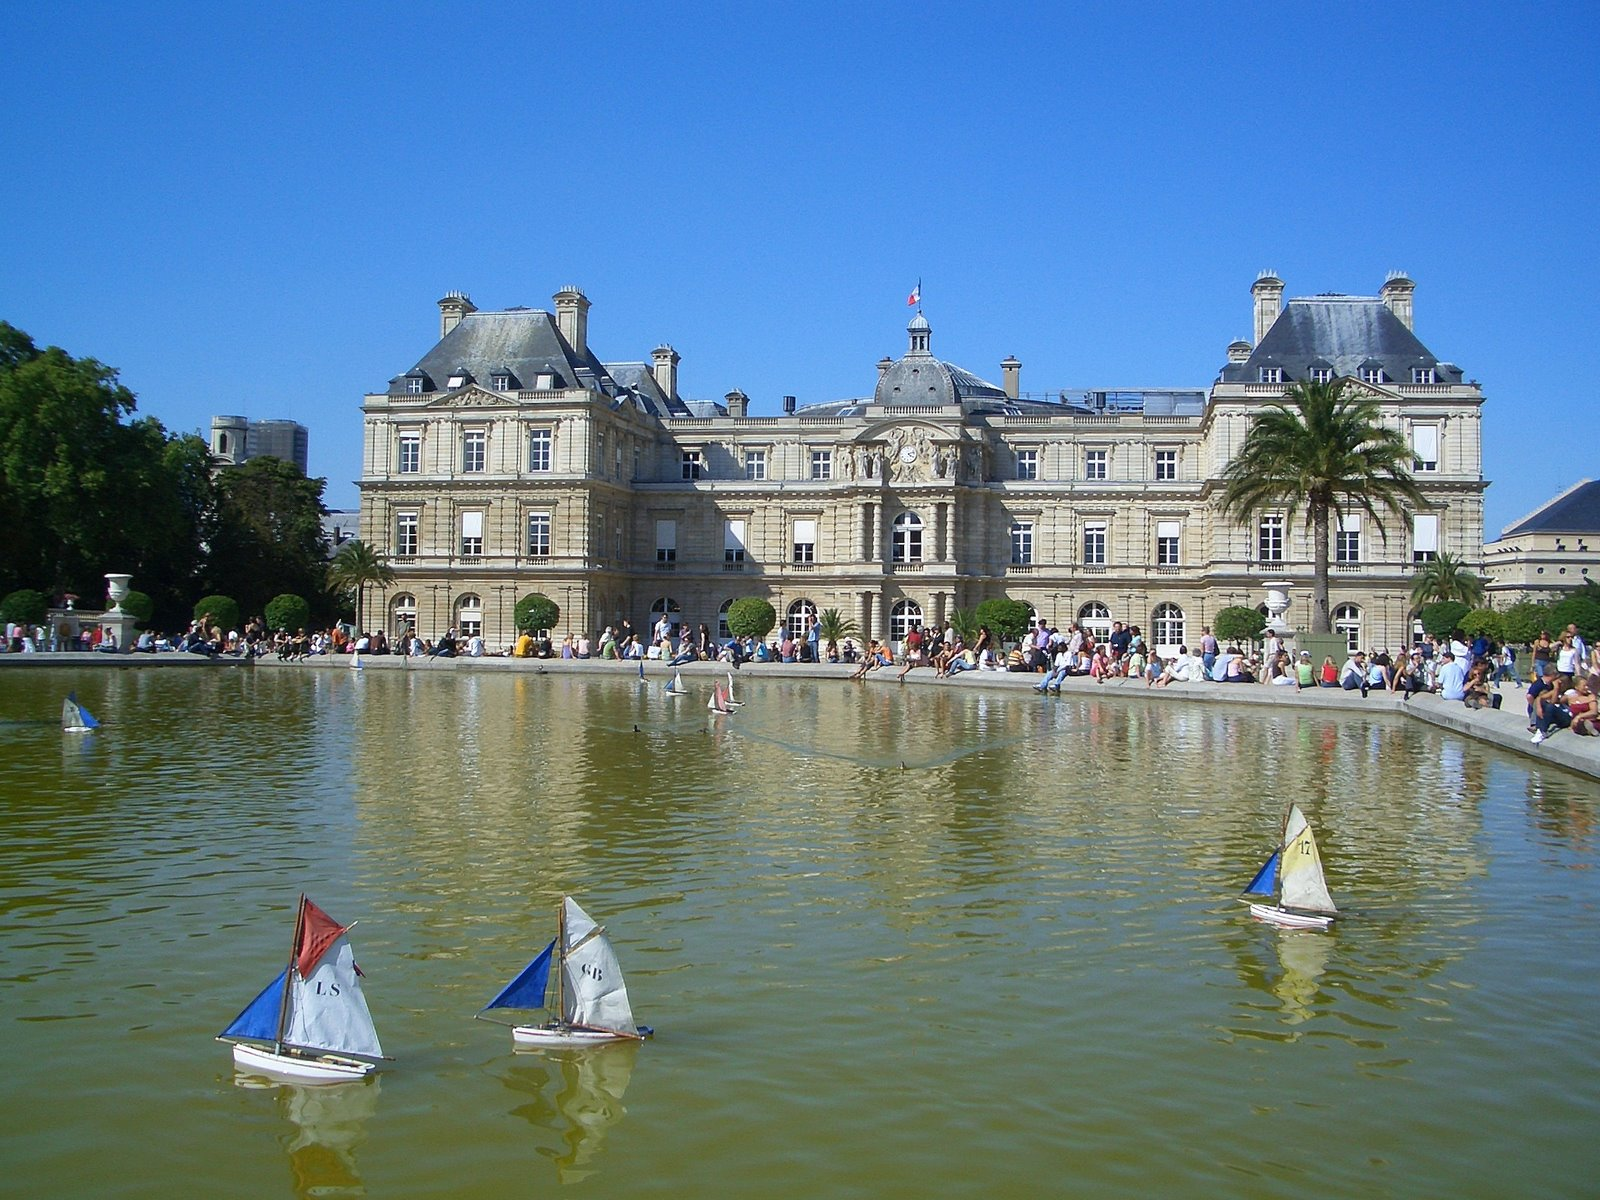 jardin du luxembourg historical facts and pictures the history hub - Le Jardin Du Luxembourg